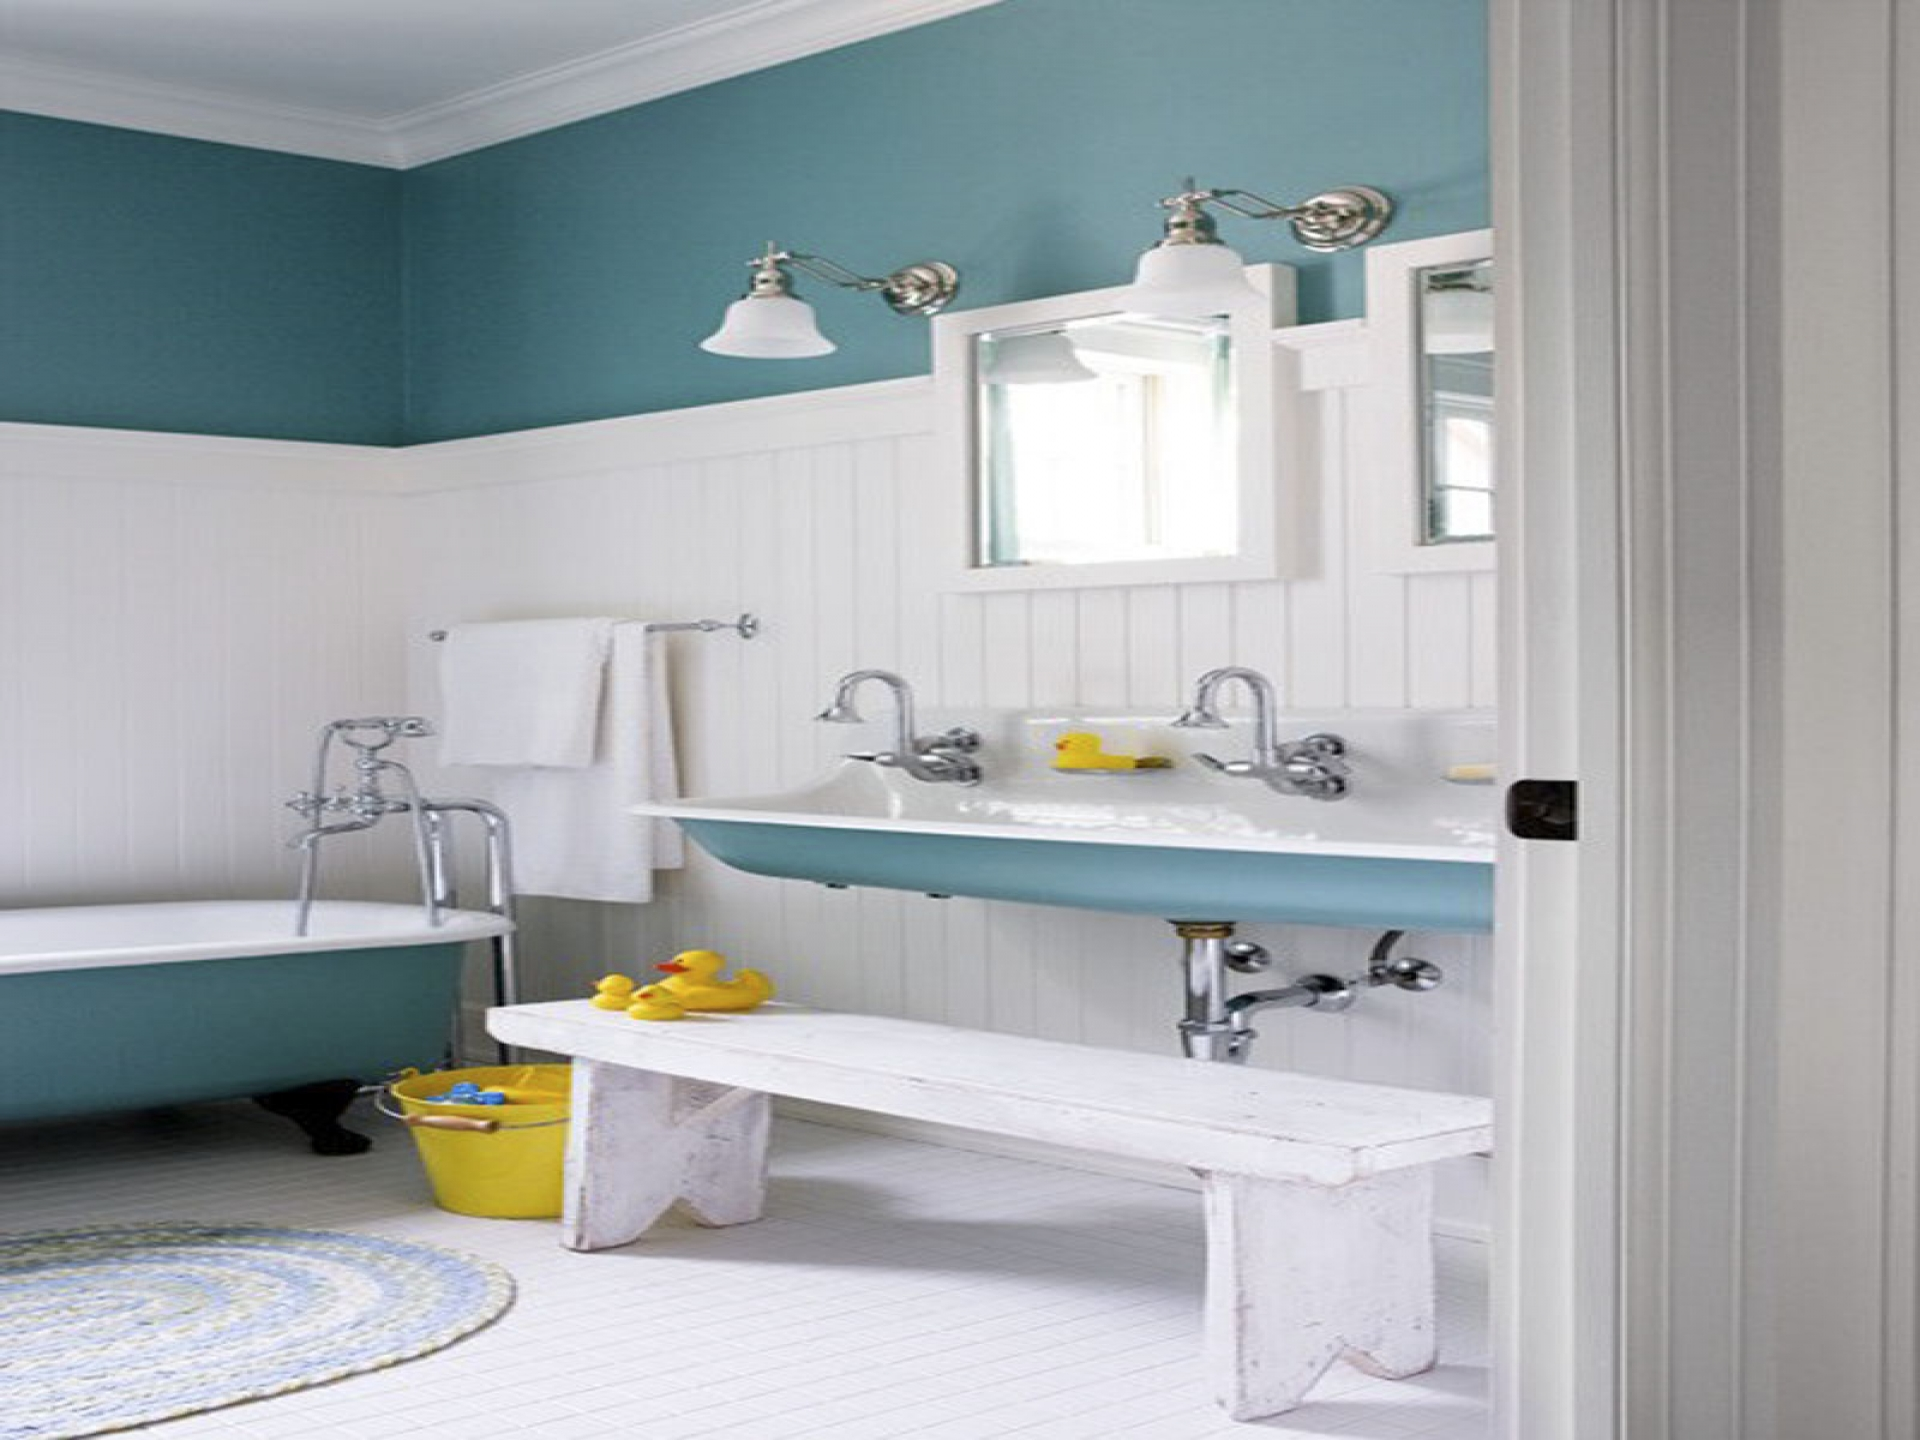 Bathroom design ideas bathroom design ideas uk bathroom design ideas